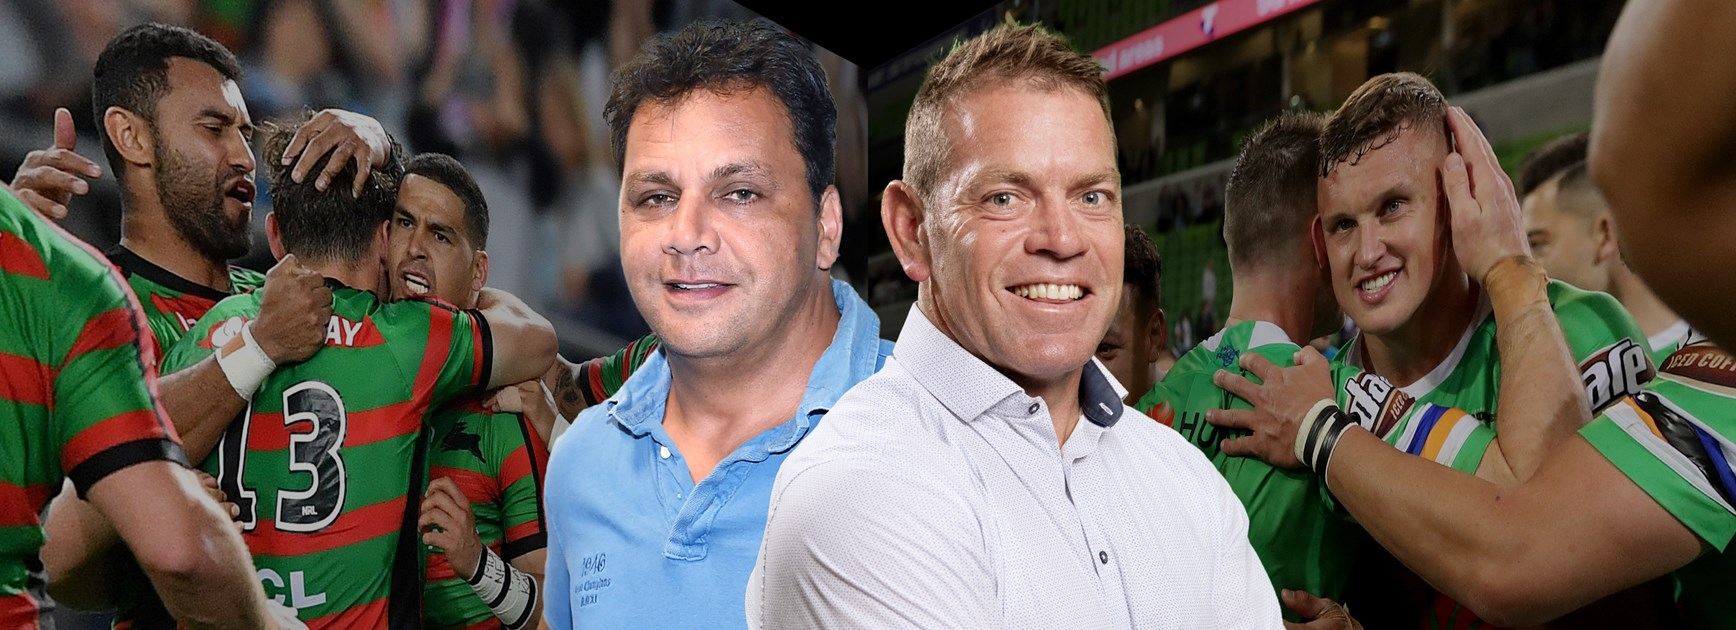 Raiders v Rabbitohs: Guest coaches Kimmorley and Renouf go head to head